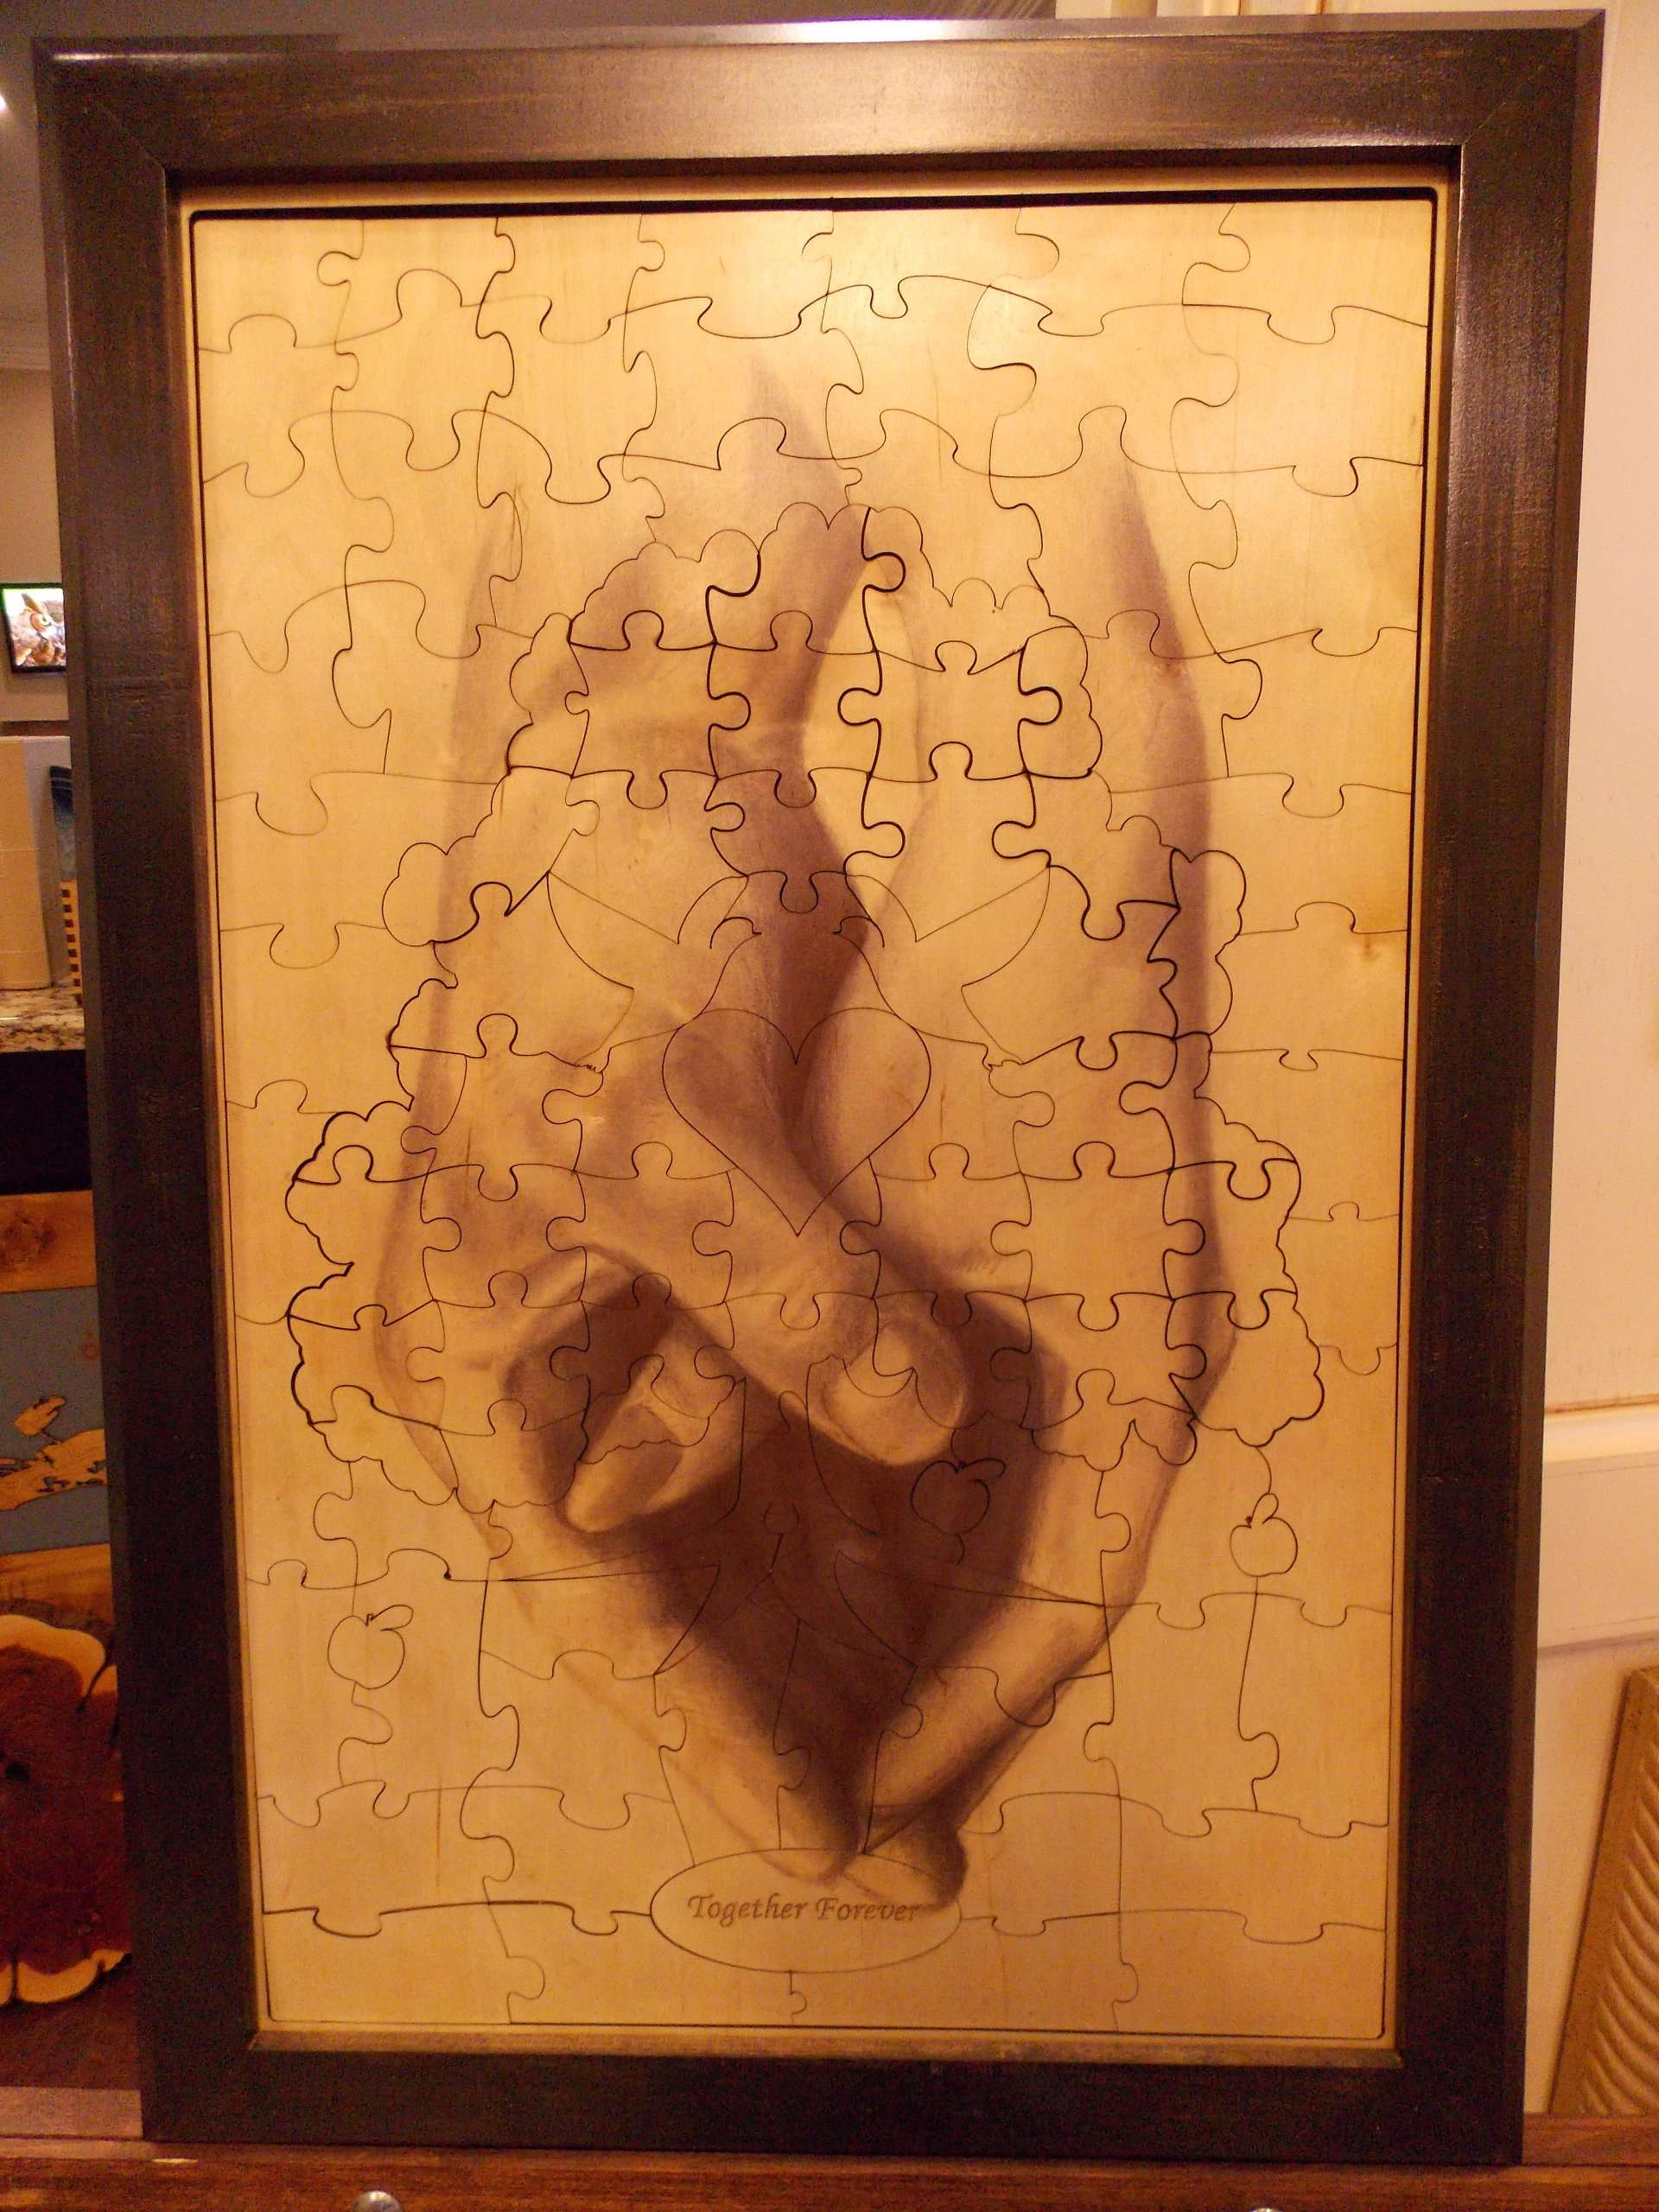 Wedding Guest Book Alternative Wood Puzzle ''Together Forever Tree Heart Hands'' 18x27 Medium 108 Piece